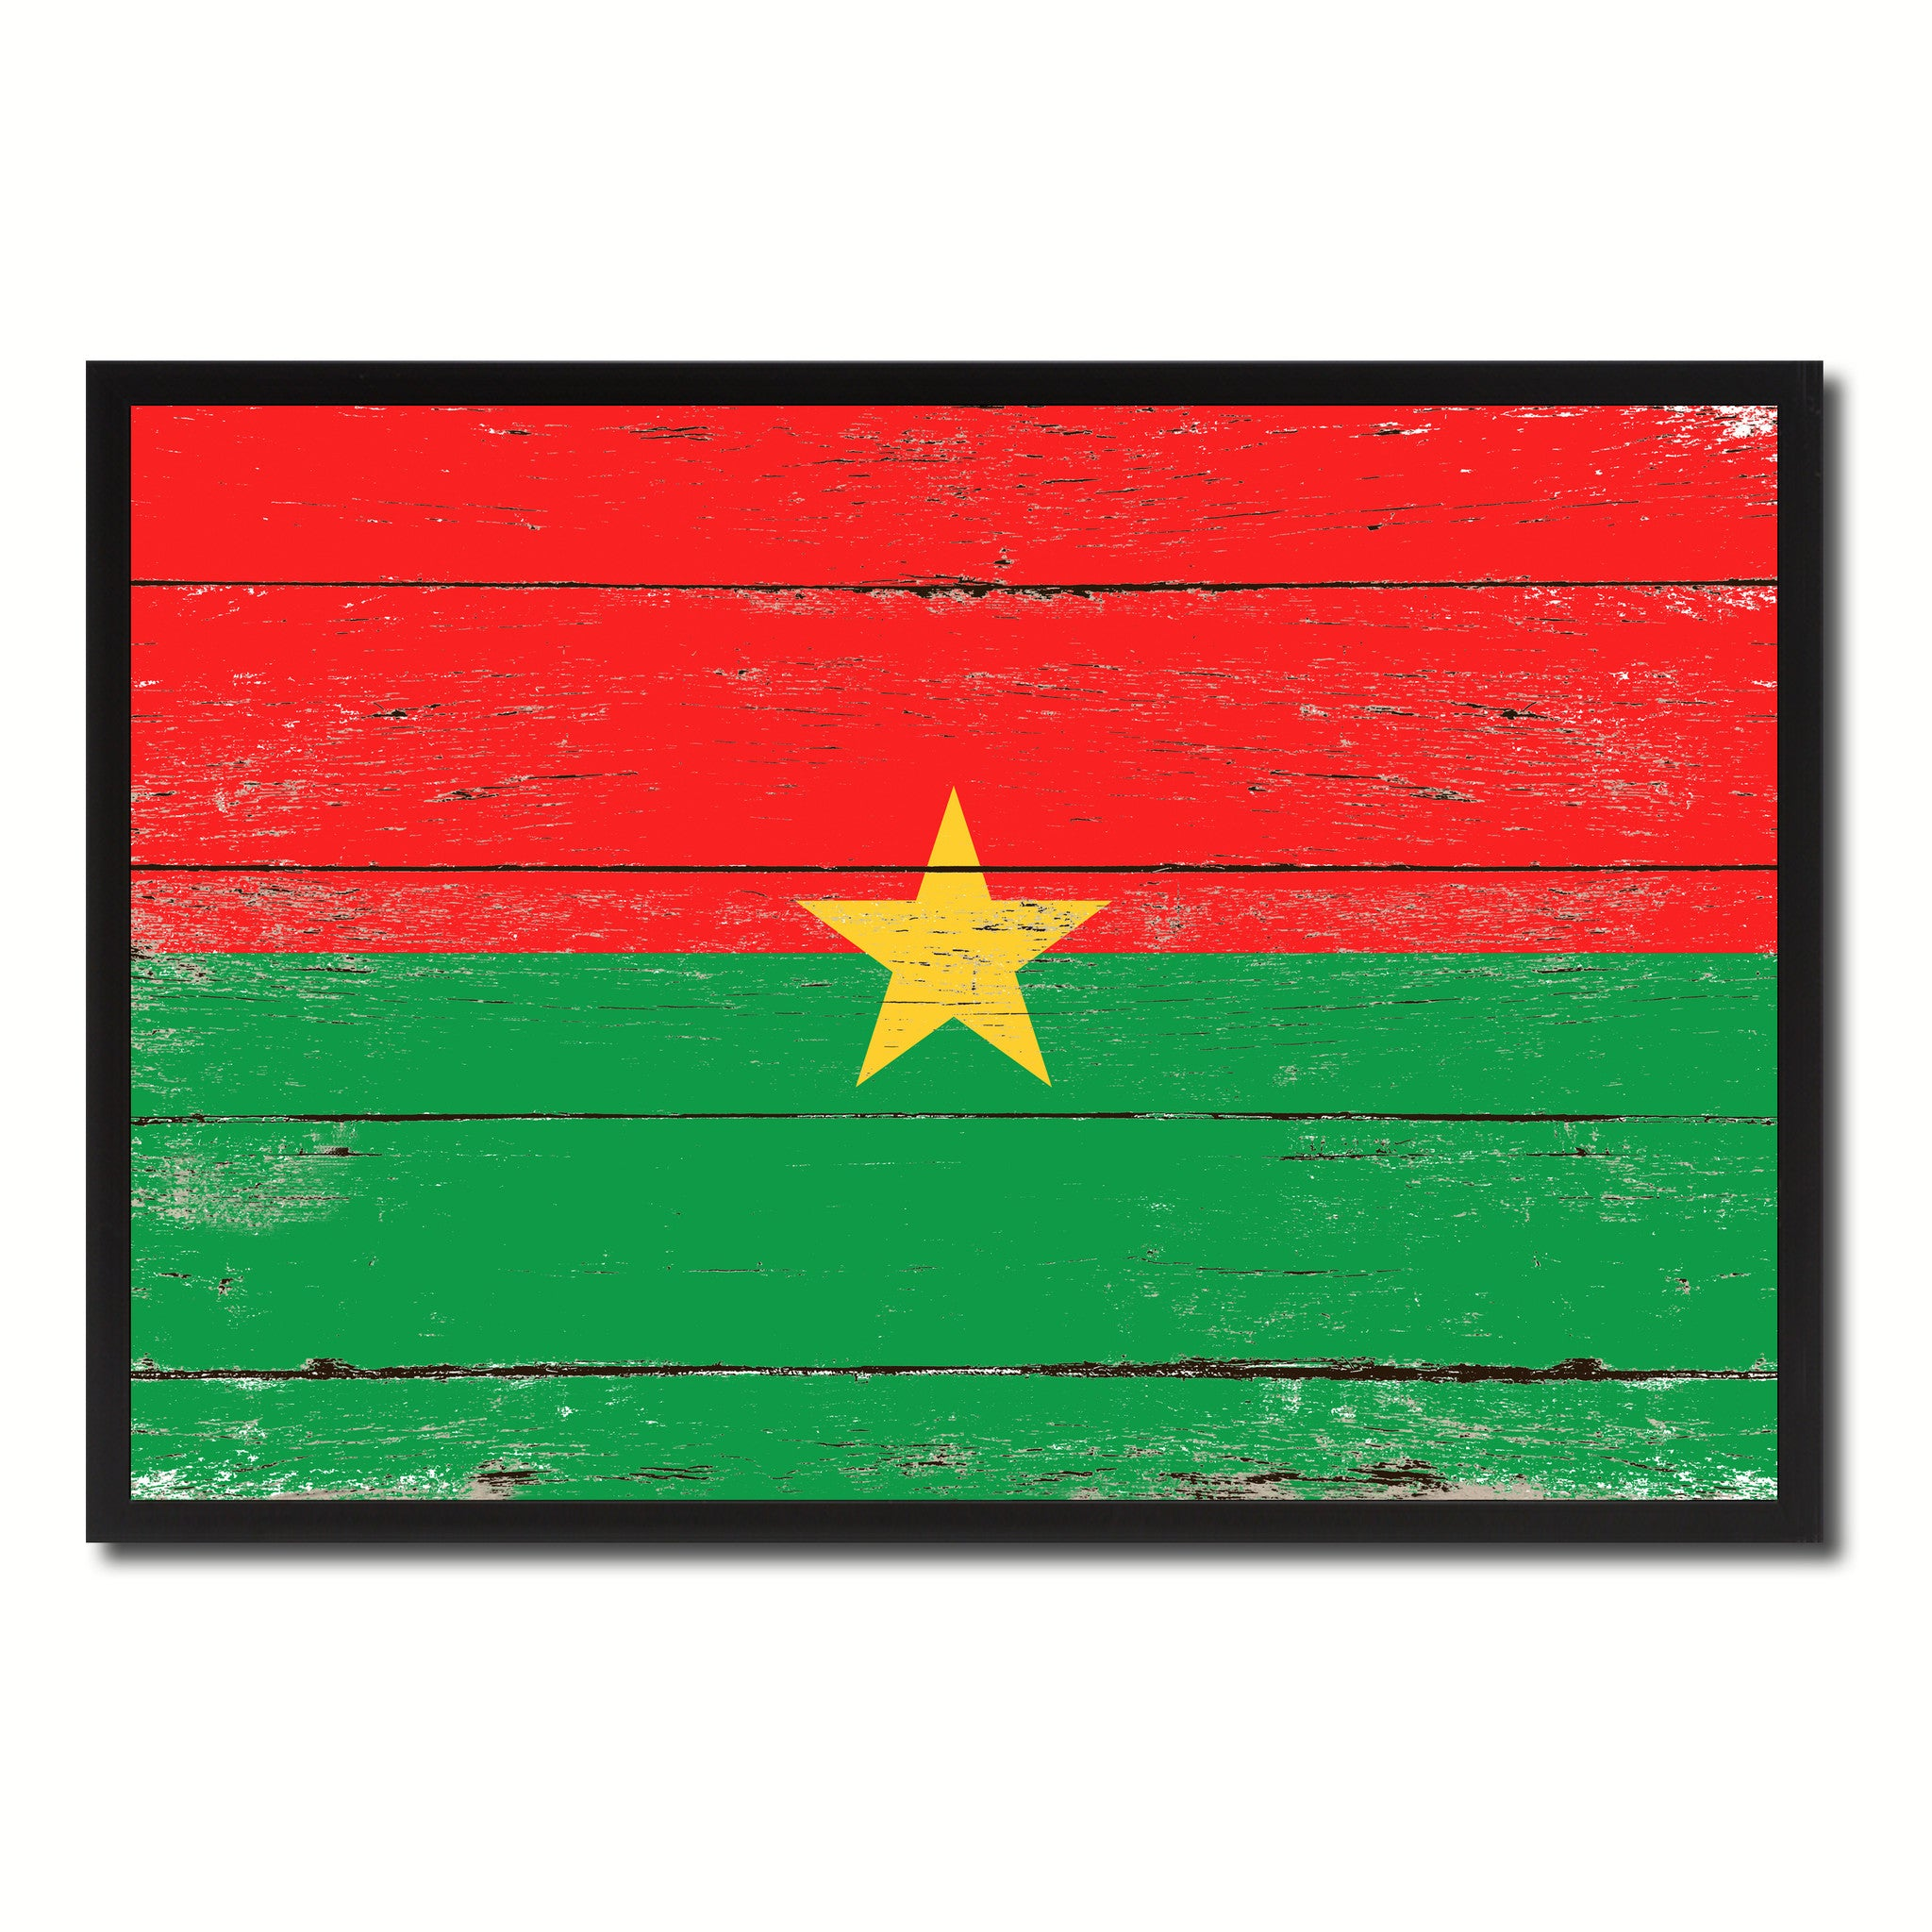 Burkina Faso Country National Flag Vintage Canvas Print with Picture Frame Home Decor Wall Art Collection Gift Ideas